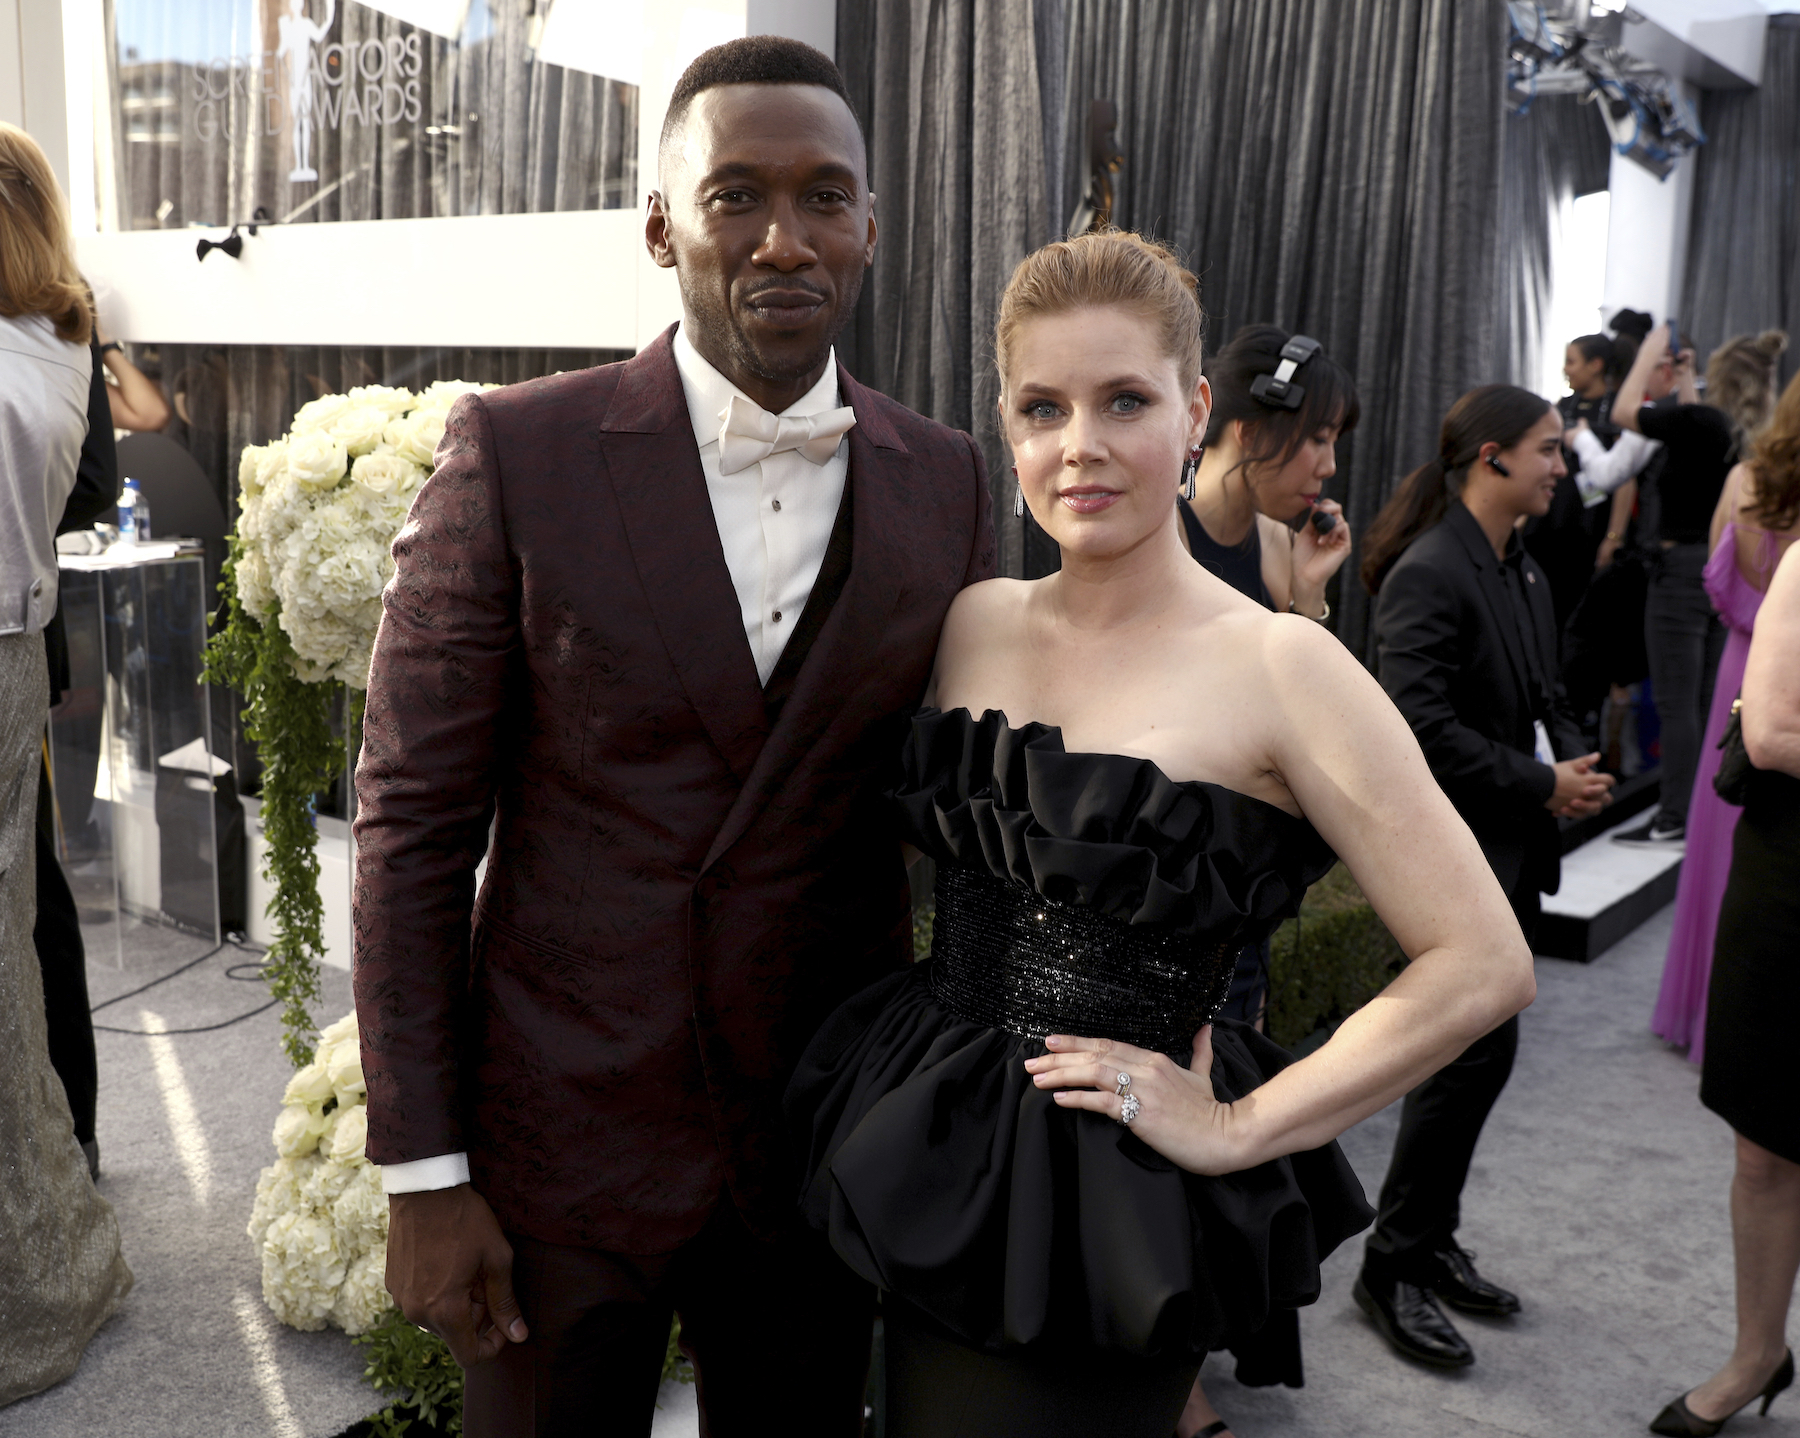 <div class='meta'><div class='origin-logo' data-origin='AP'></div><span class='caption-text' data-credit='Matt Sayles/Invision/AP'>Mahershala Ali, left, and Amy Adams arrive at the 25th annual Screen Actors Guild Awards at the Shrine Auditorium & Expo Hall on Sunday, Jan. 27, 2019, in Los Angeles.</span></div>